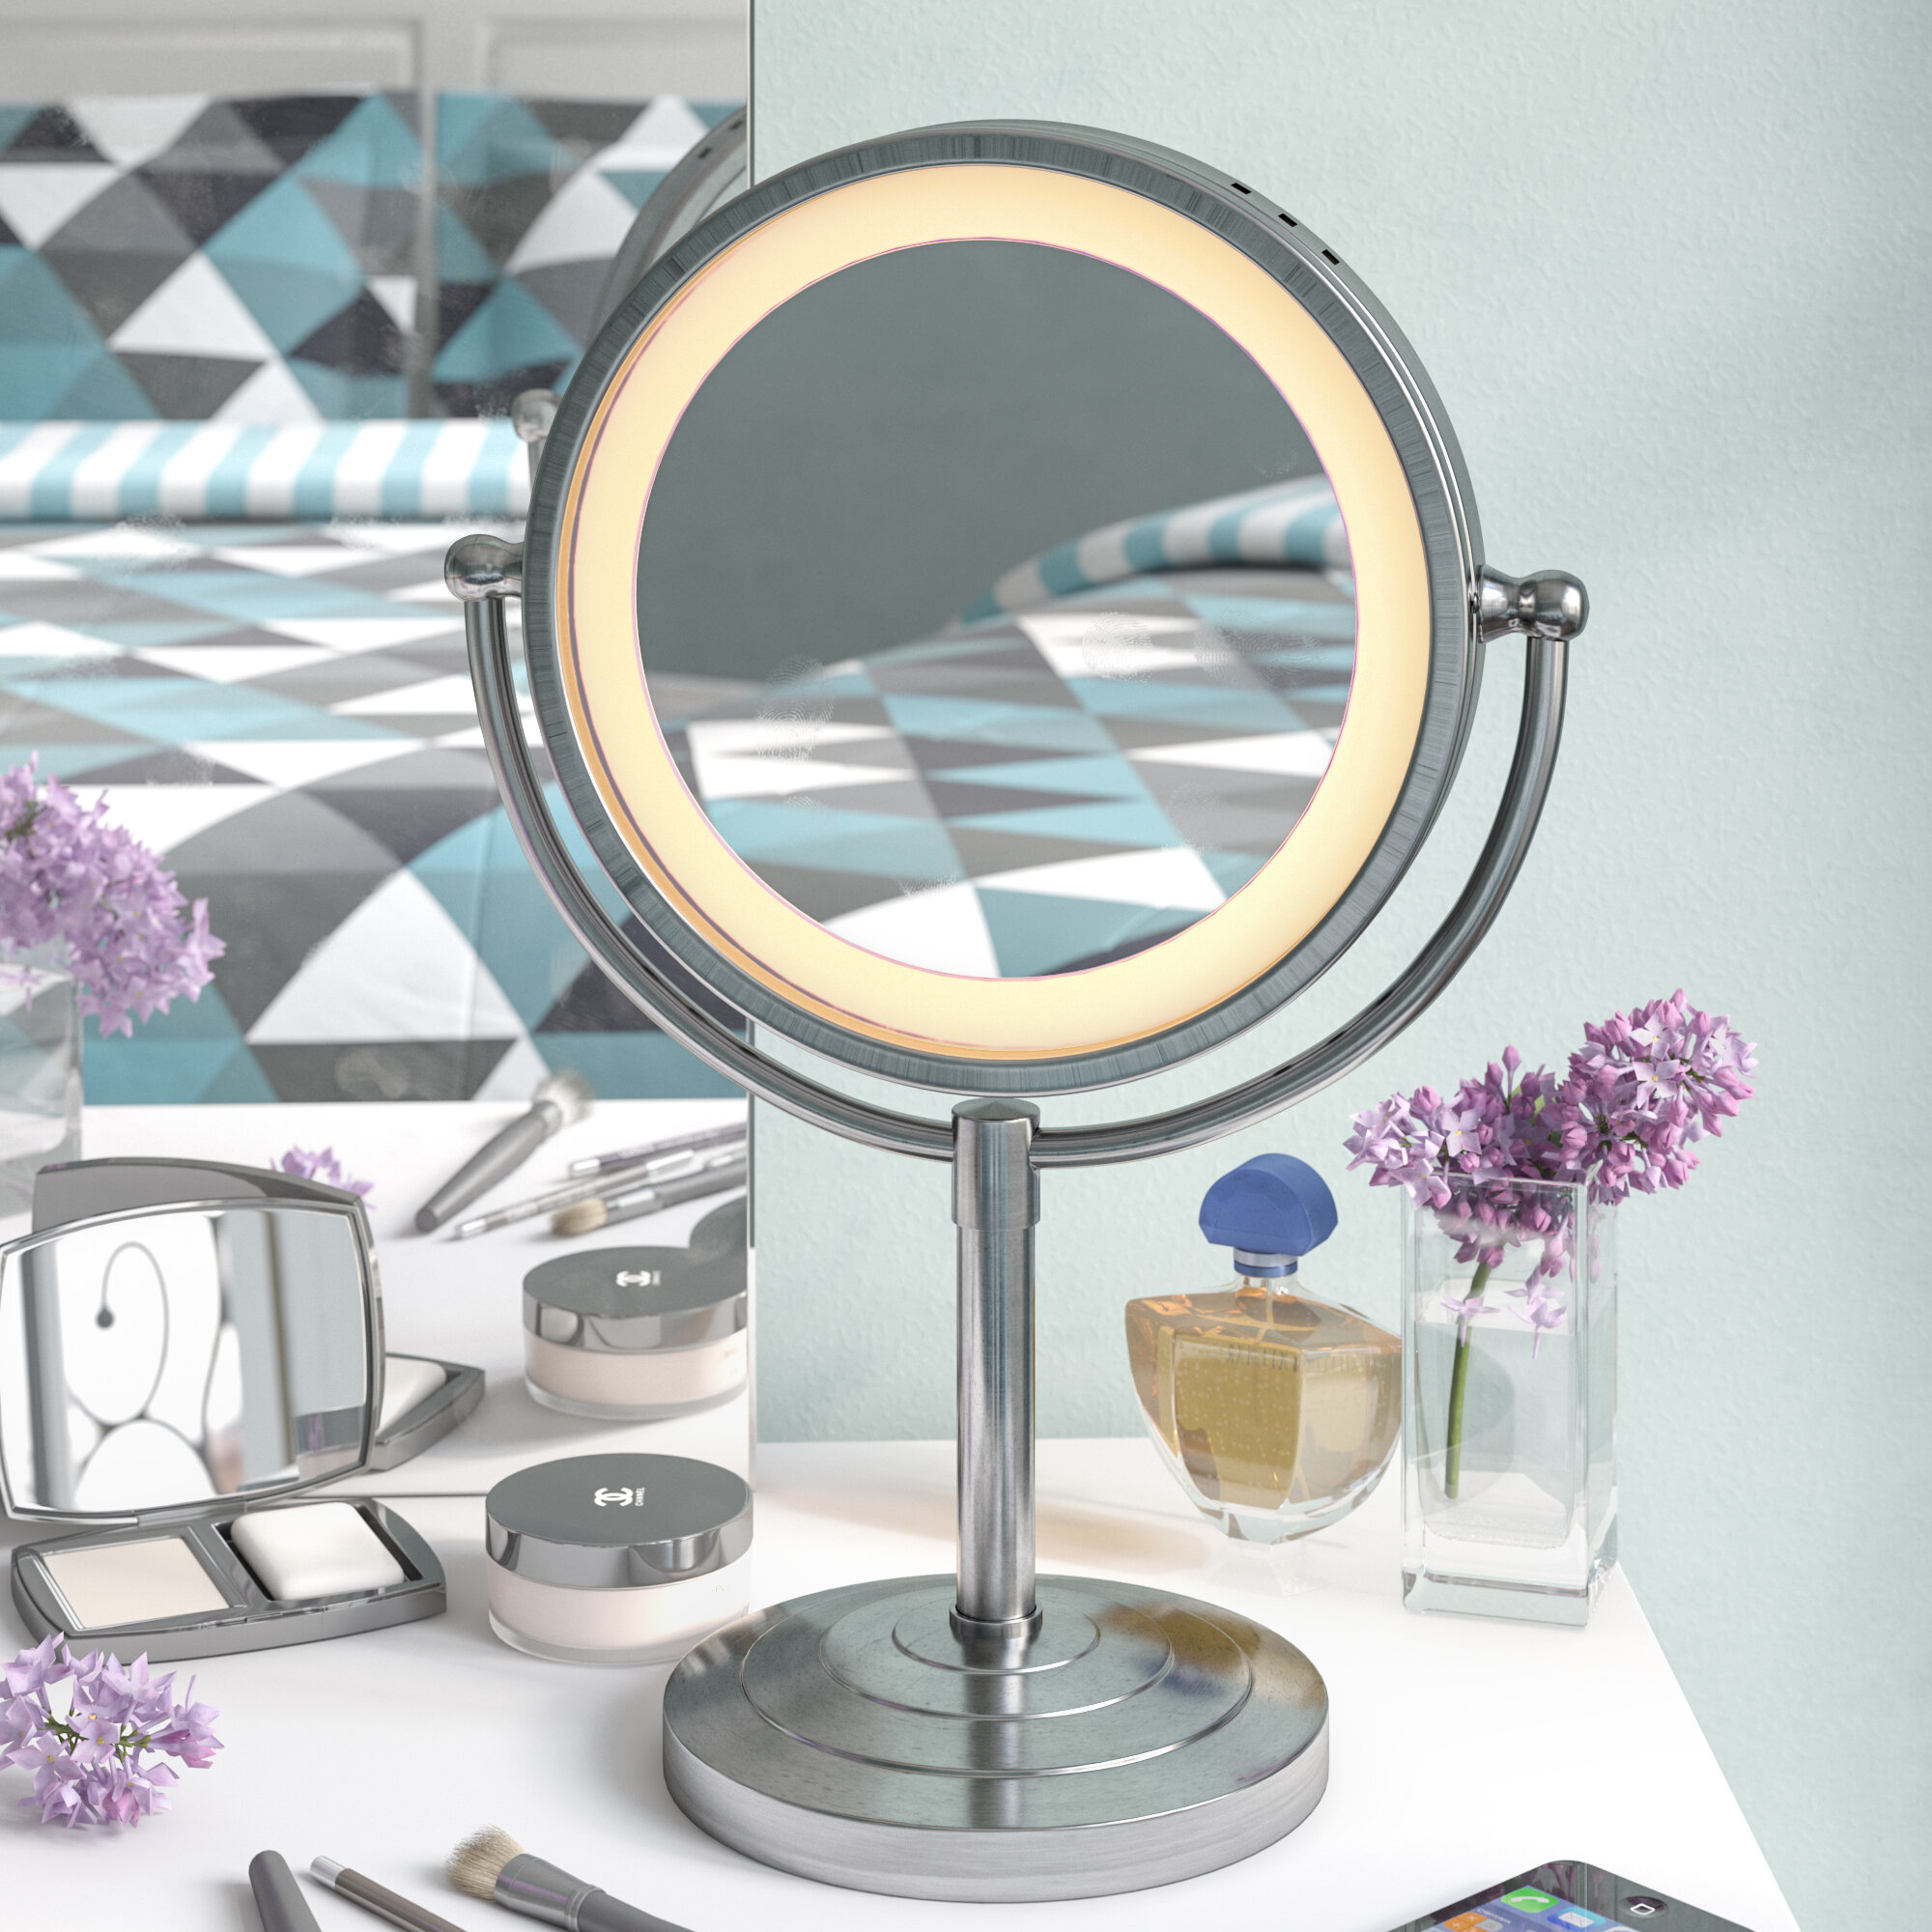 Symple Stuff Halo Lighted Tabletop Vanity Mirror U0026 Reviews | Wayfair